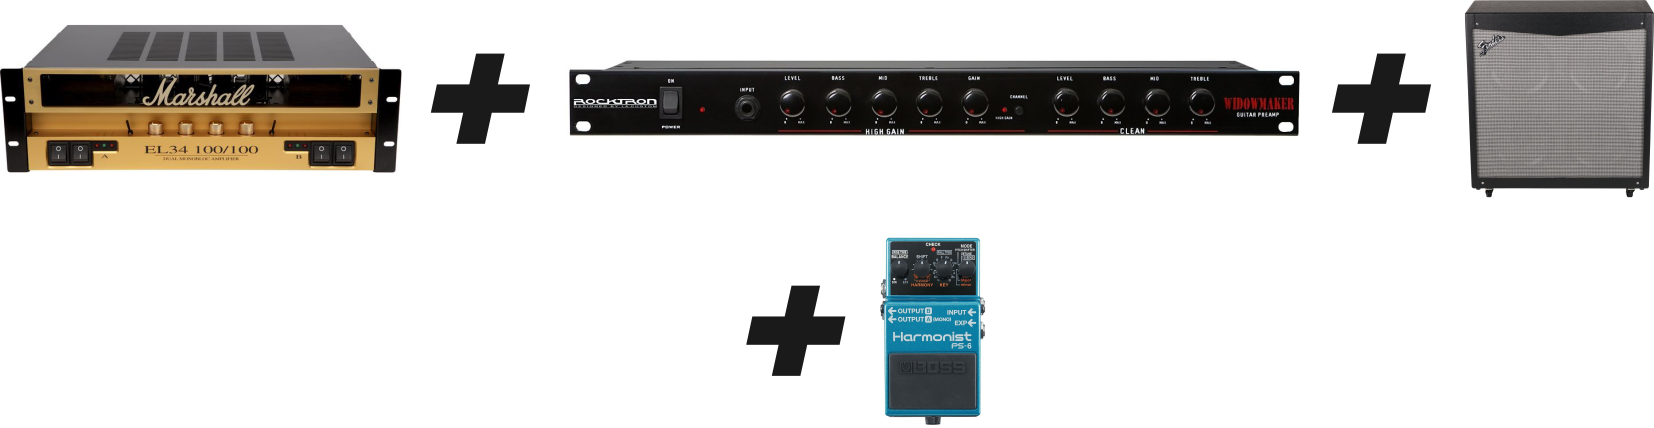 Guitar Rack System Setup Option (preamp, power amp and speaker)